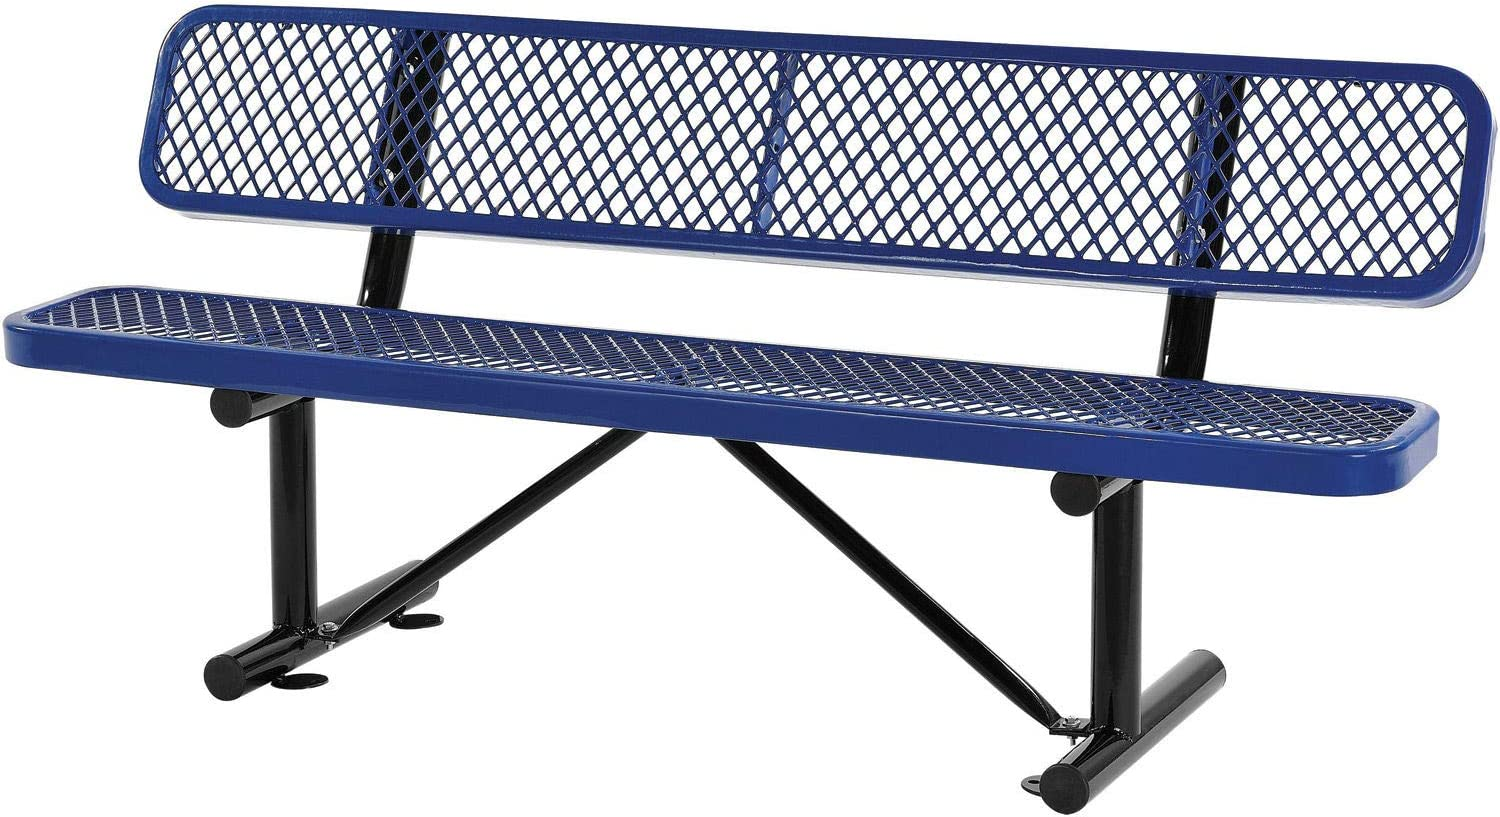 72 L Expanded Metal Mesh Bench W Back Rest Blue Kitchen Dining Amazon Com